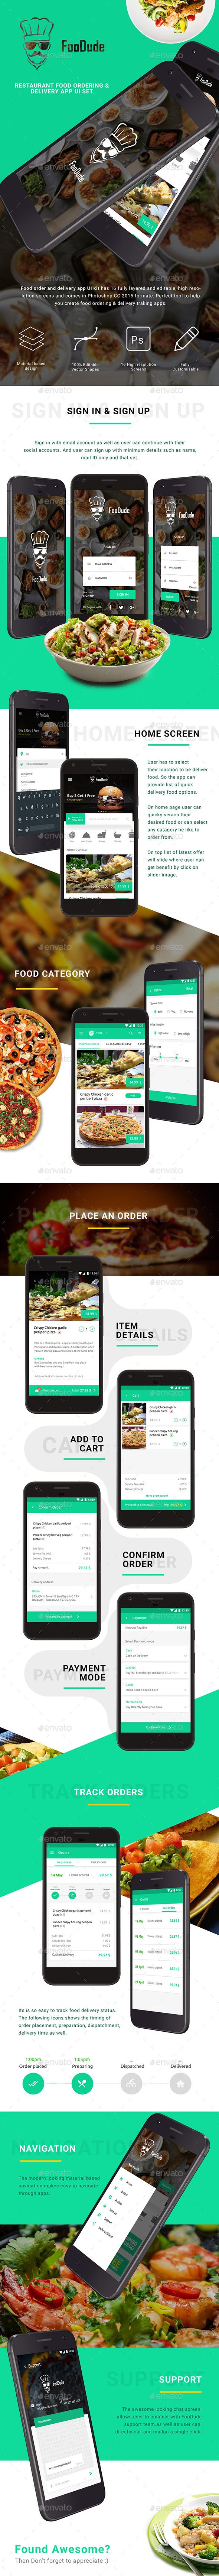 RushCart  - Multipurpose Ecommerce App UI Kit (User Interfaces)